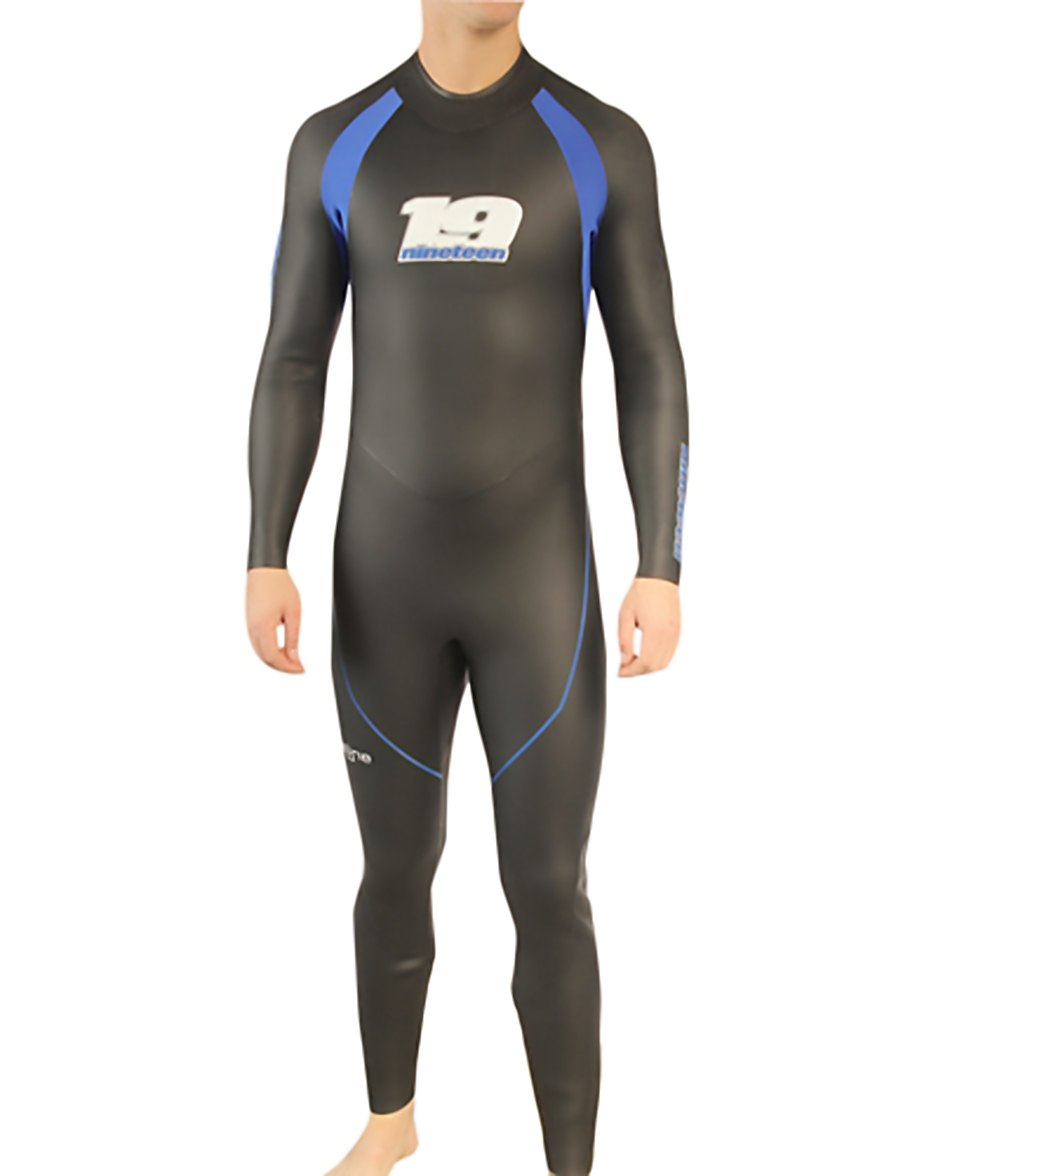 4b220f0340 Nineteen Men s Pipeline Fullsleeve Triathlon Wetsuit at SwimOutlet.com -  Free Shipping